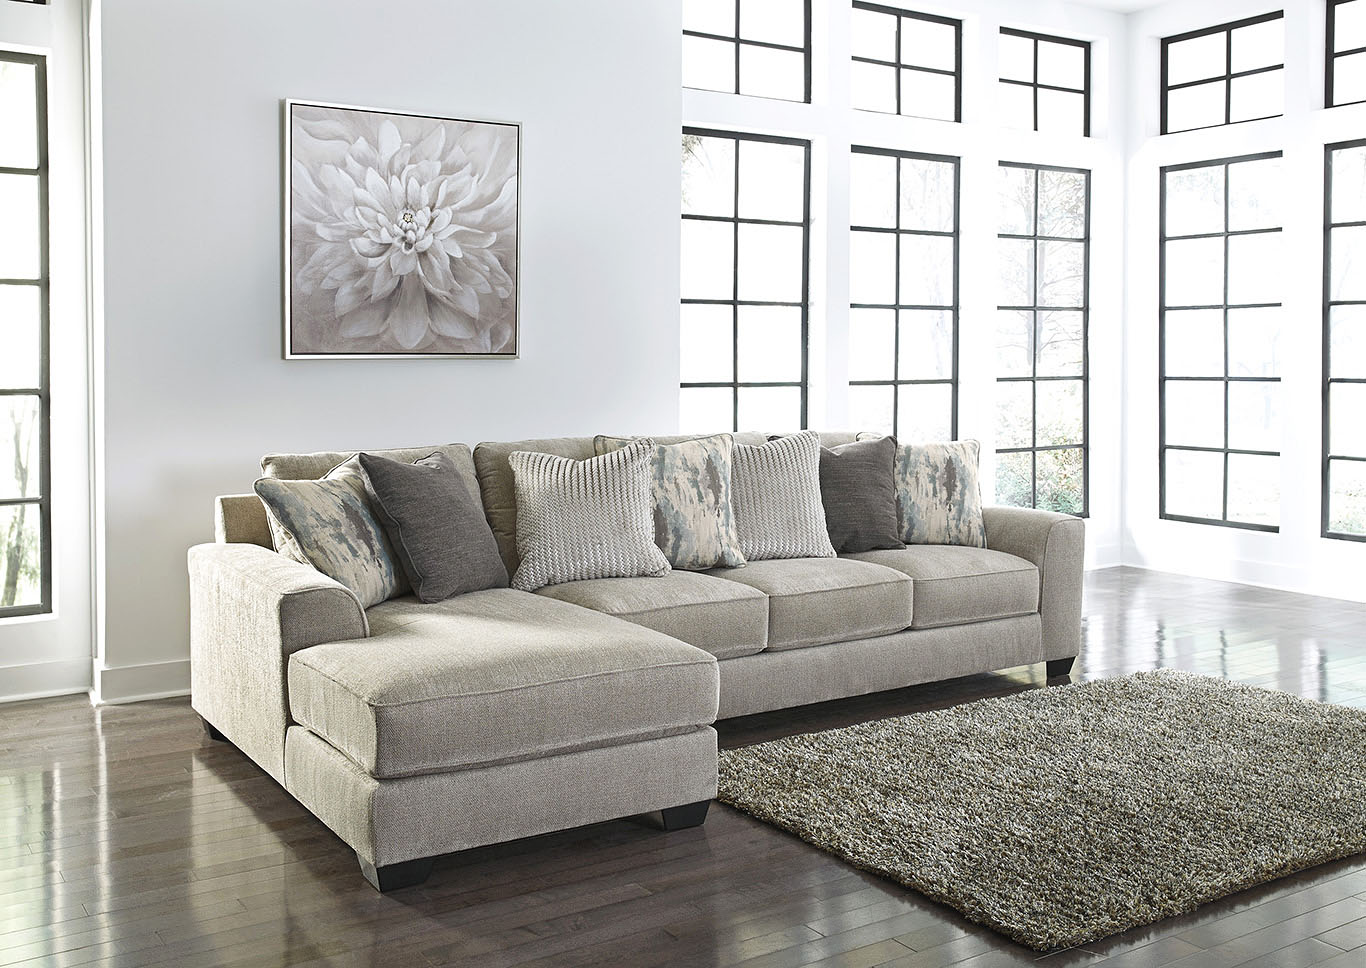 Ardsley Pewter 2 Piece LAF Chaise Sectional,Signature Design By Ashley